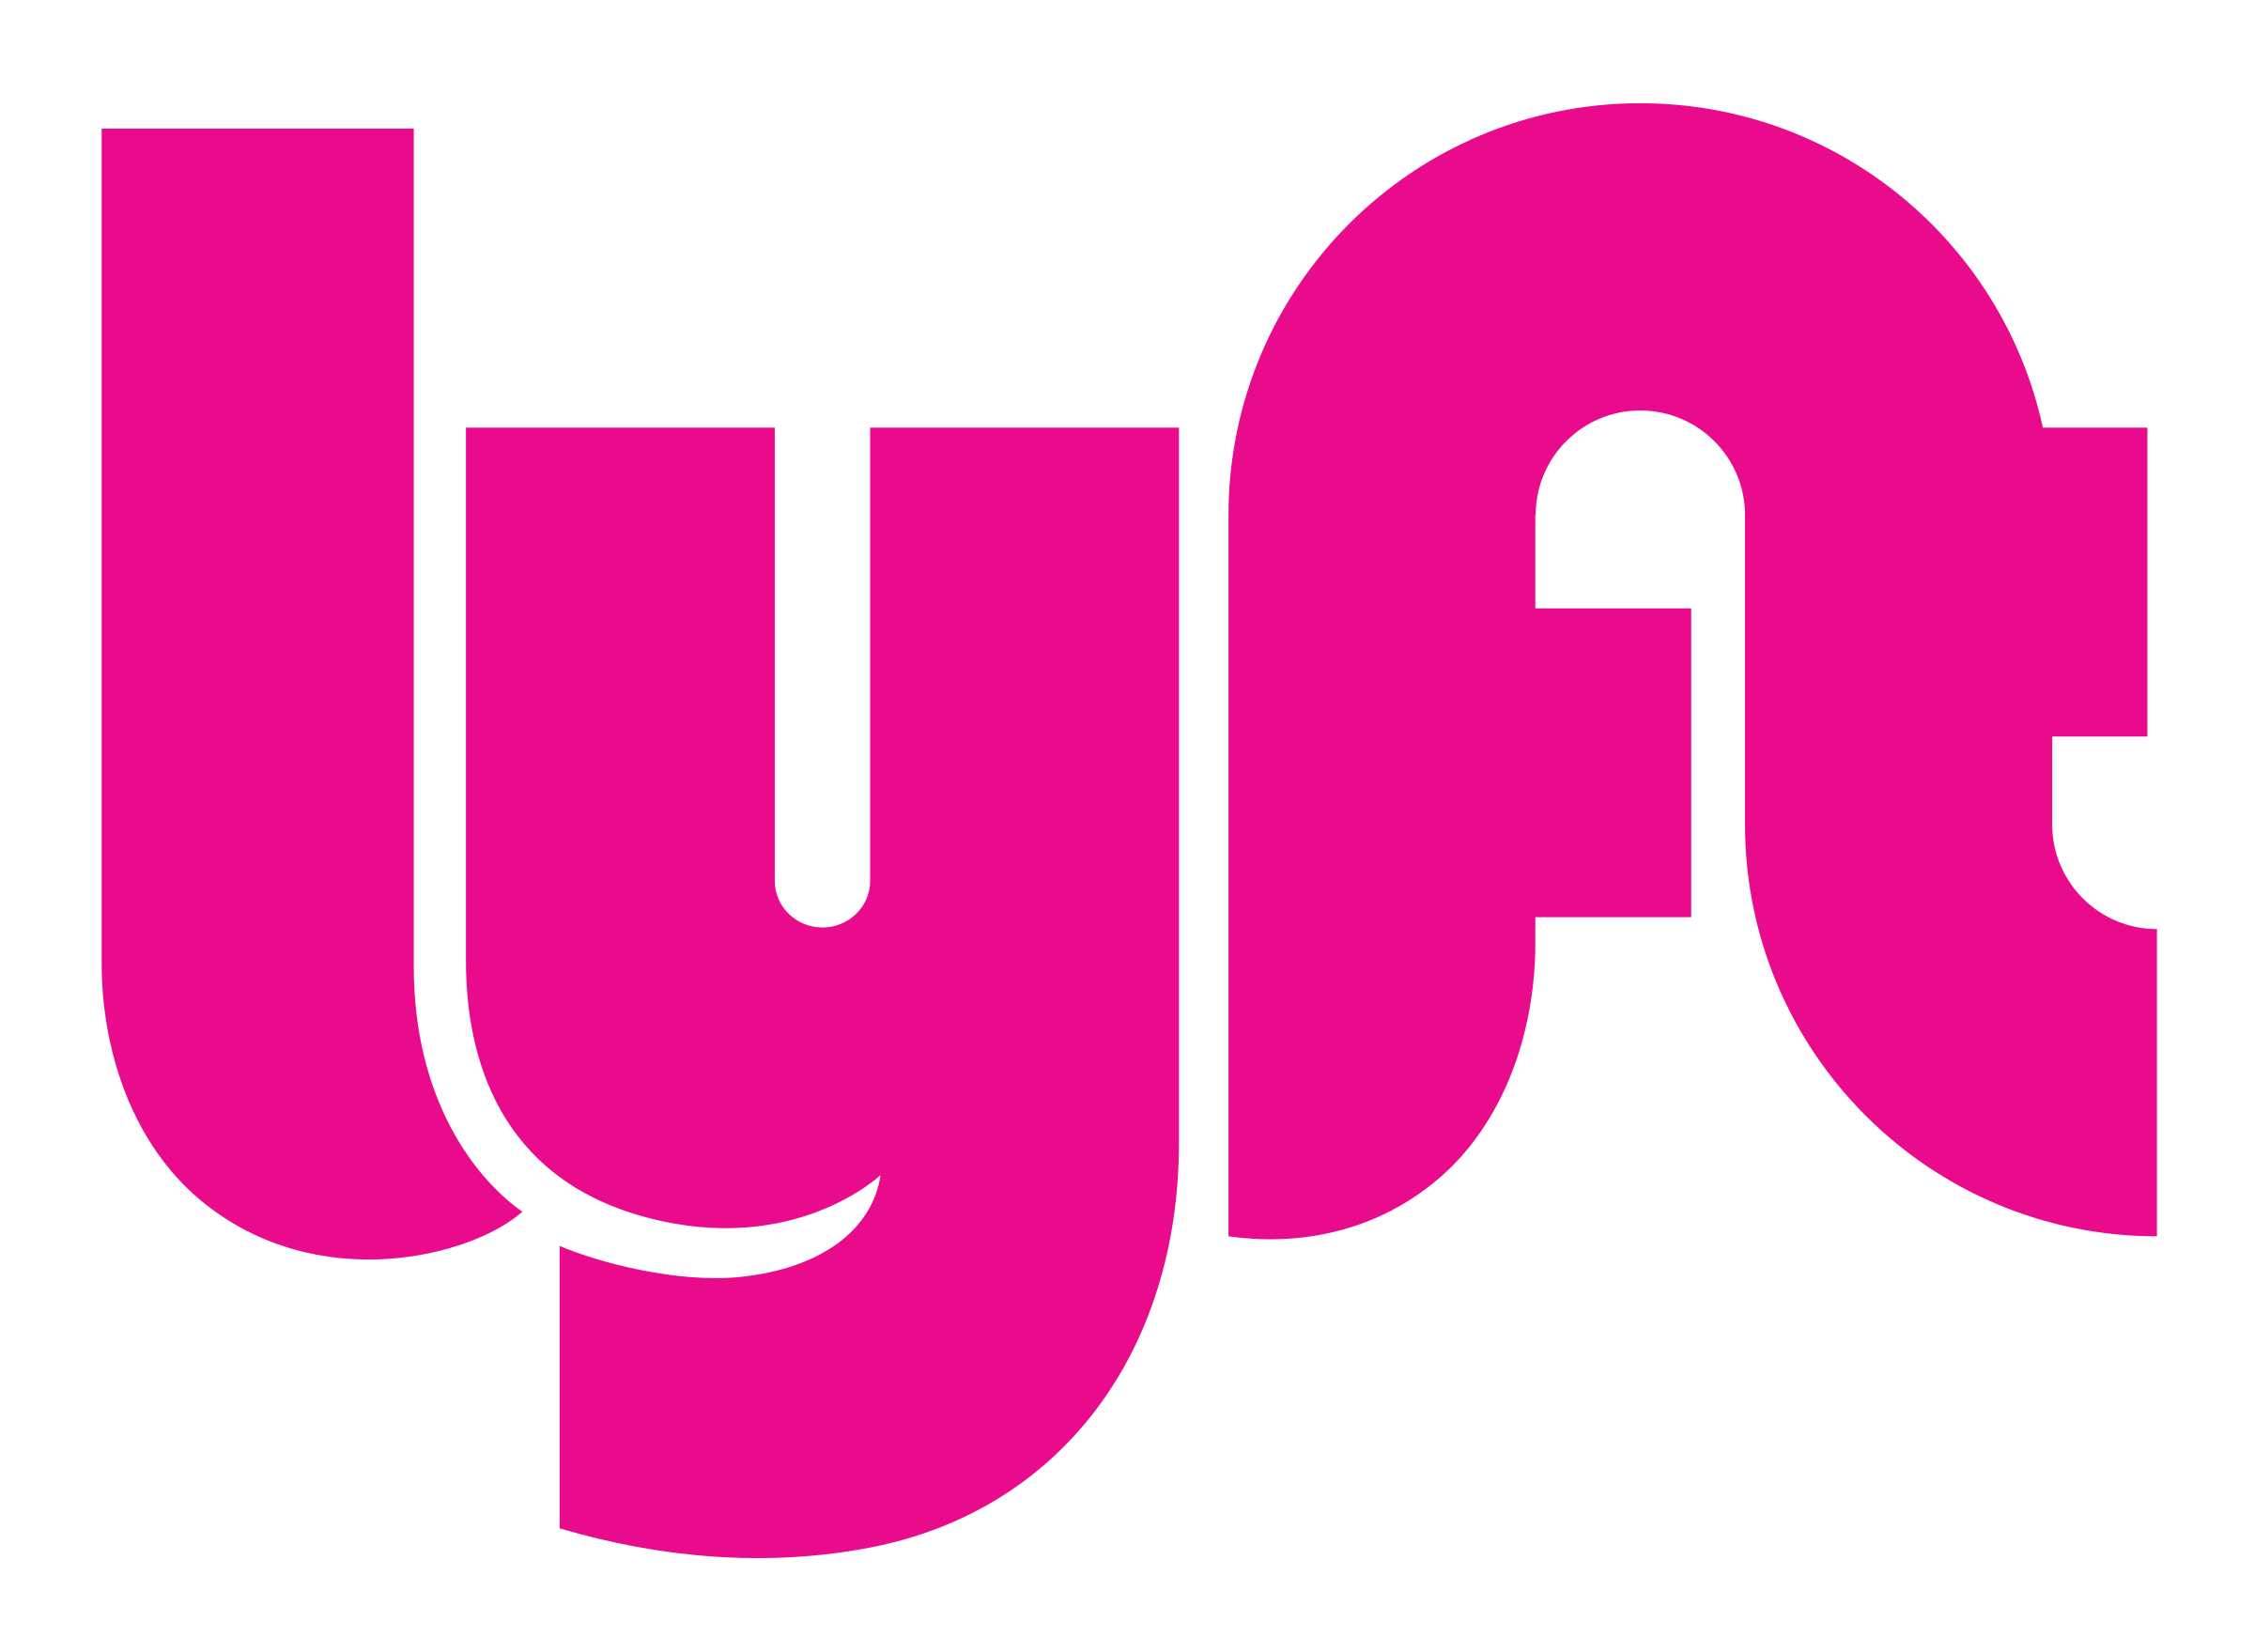 lyft-logo-png-transparent